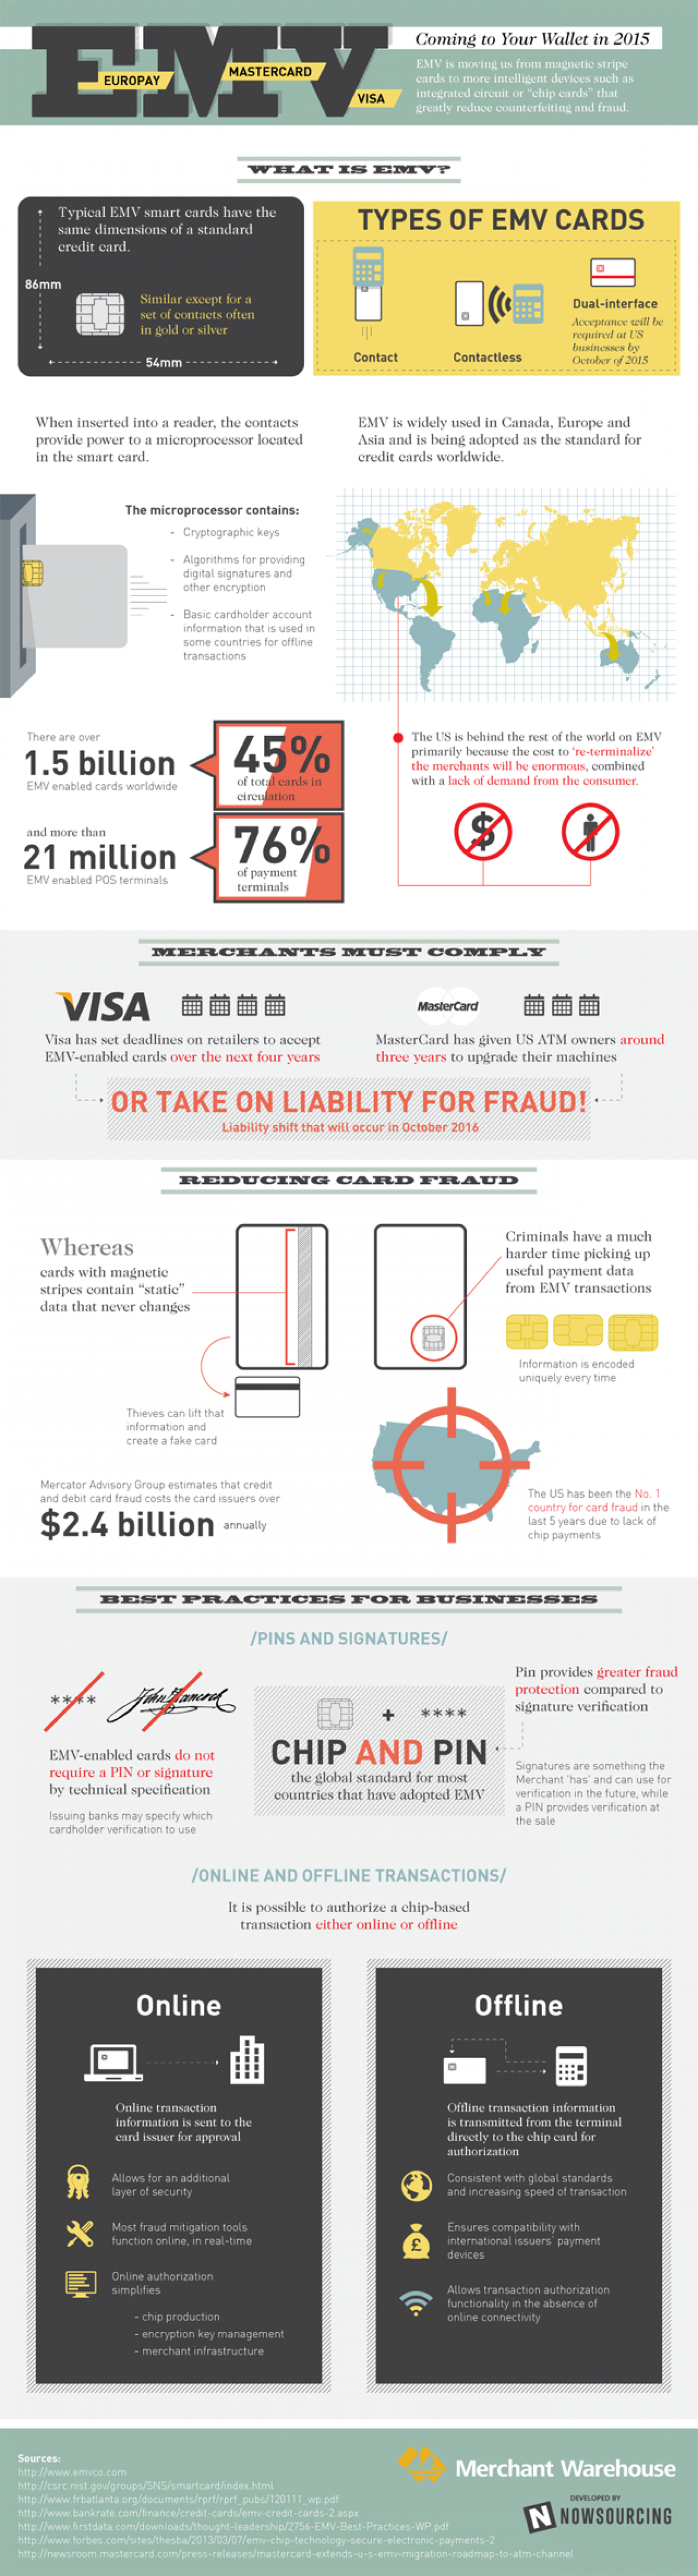 EMV: Coming to Your Wallet in 2015 [Infographic] Infographic